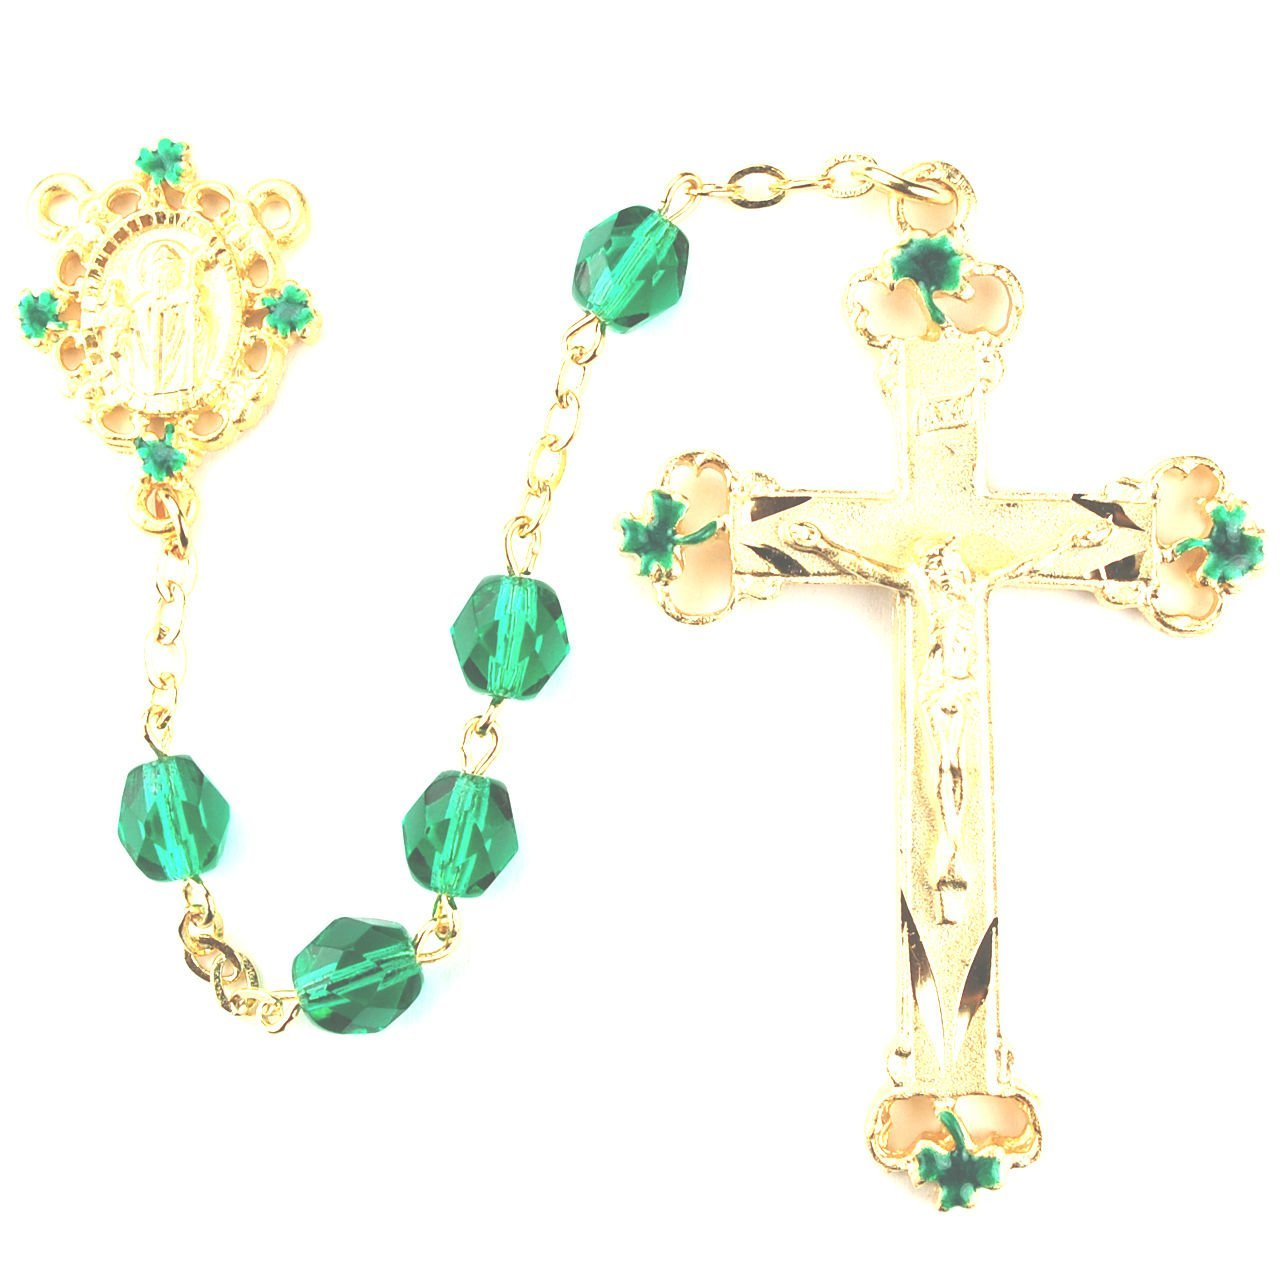 Green and Black St. Patrick Irish Catholic Rosary Beads. 7mm Green and Black Glass Beads and a Gold Plated Over Pewter Crucifix and St. Patrick Centerpiece with Green Enameled Shamrocks on the Crucifix and Centerpiece.